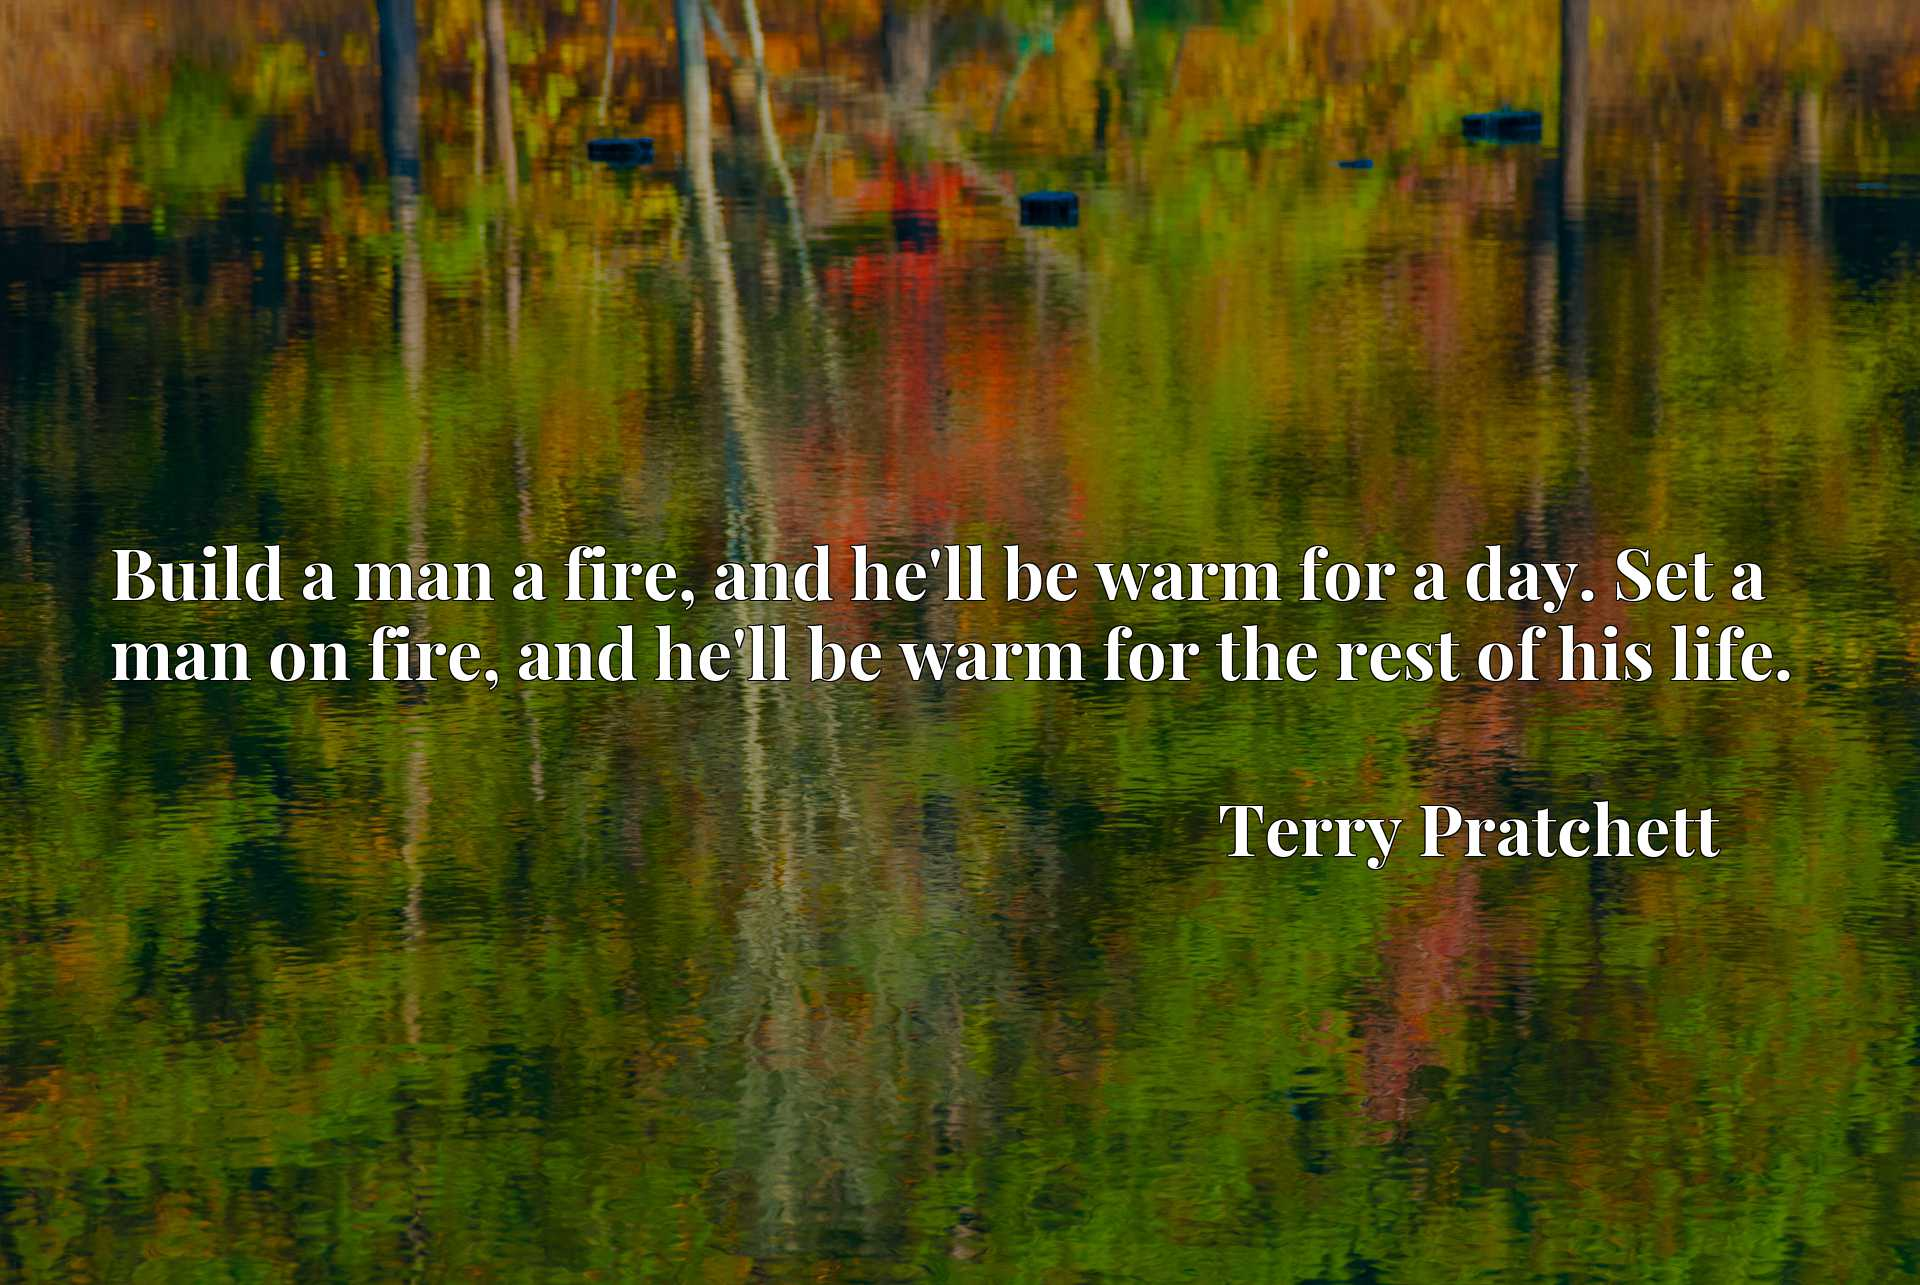 Quote Picture :Build a man a fire, and he'll be warm for a day. Set a man on fire, and he'll be warm for the rest of his life.